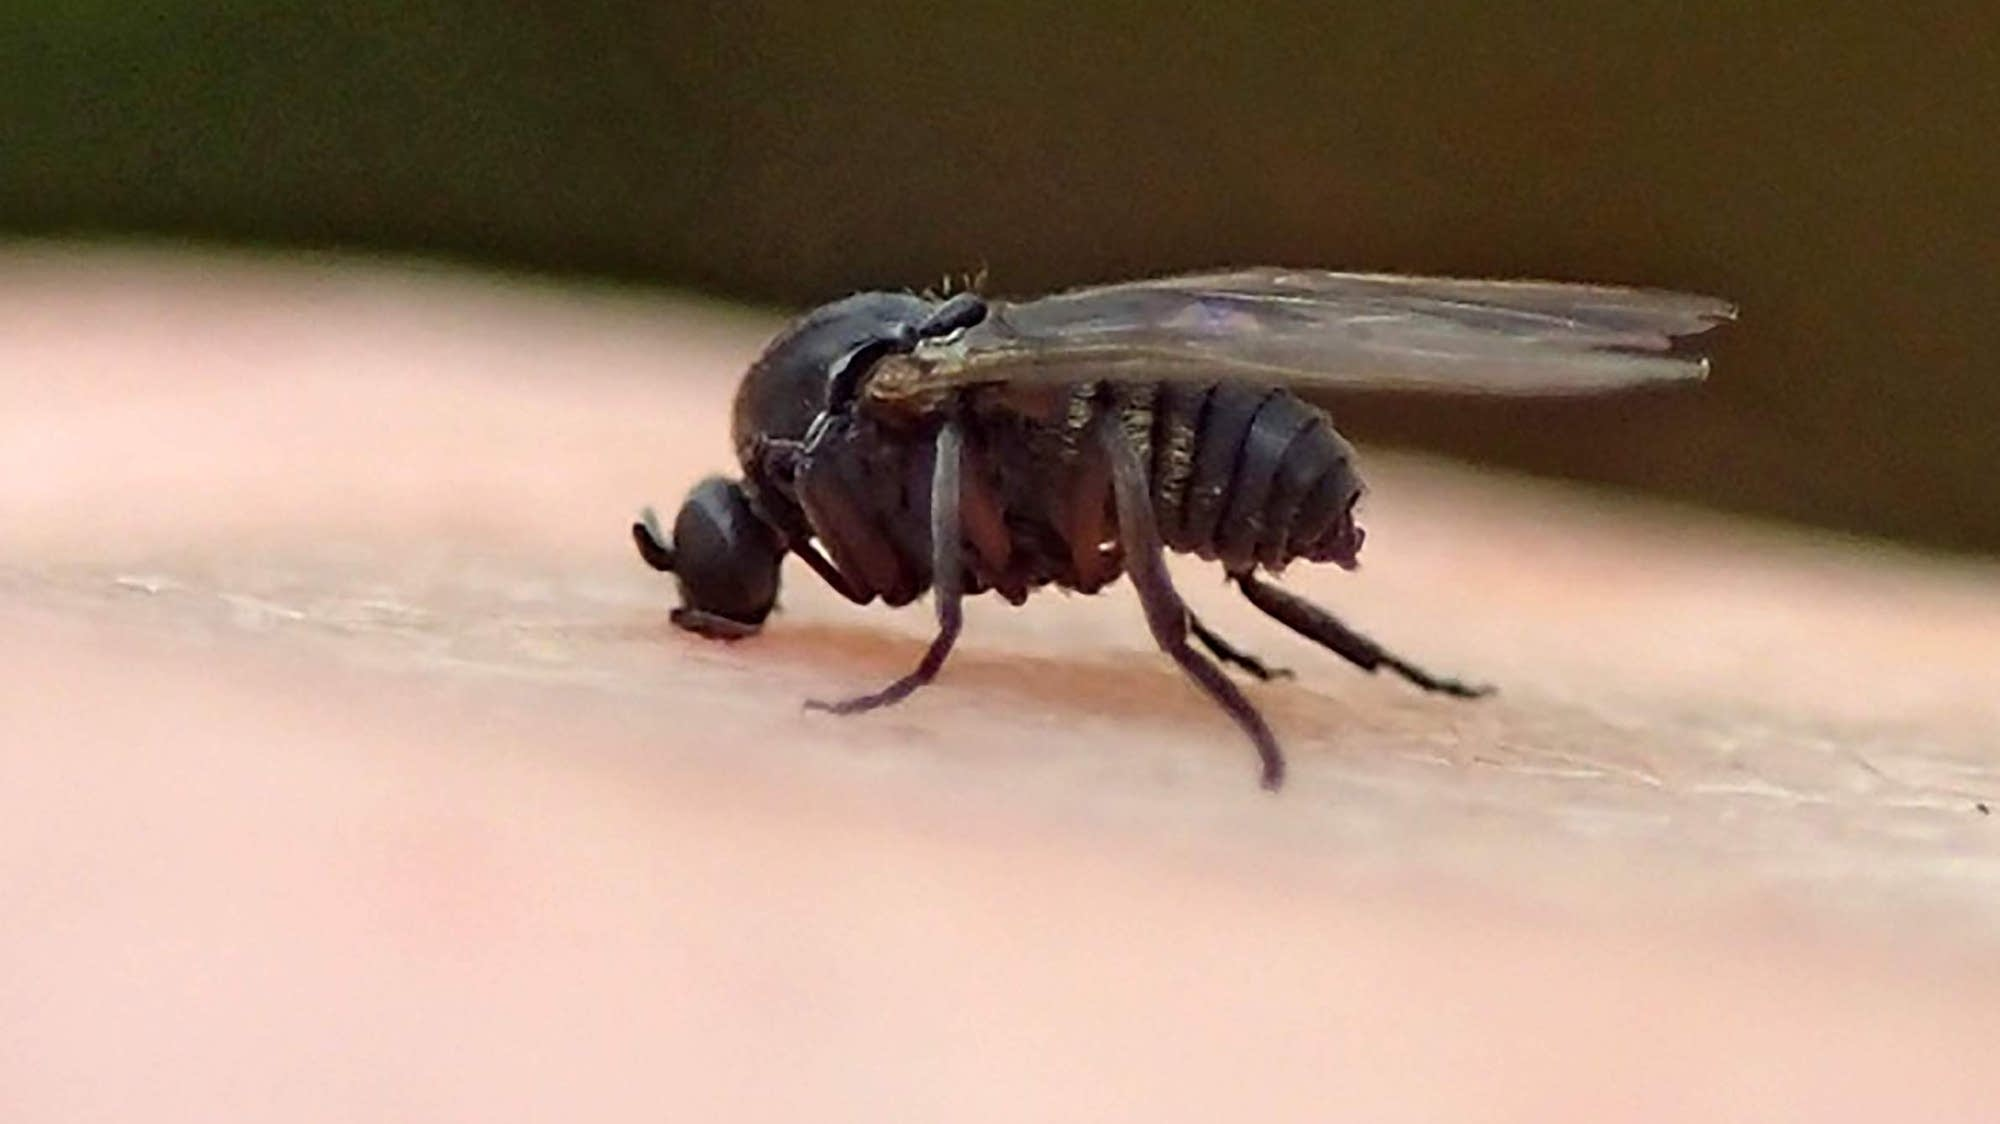 What are black gnats attracted to